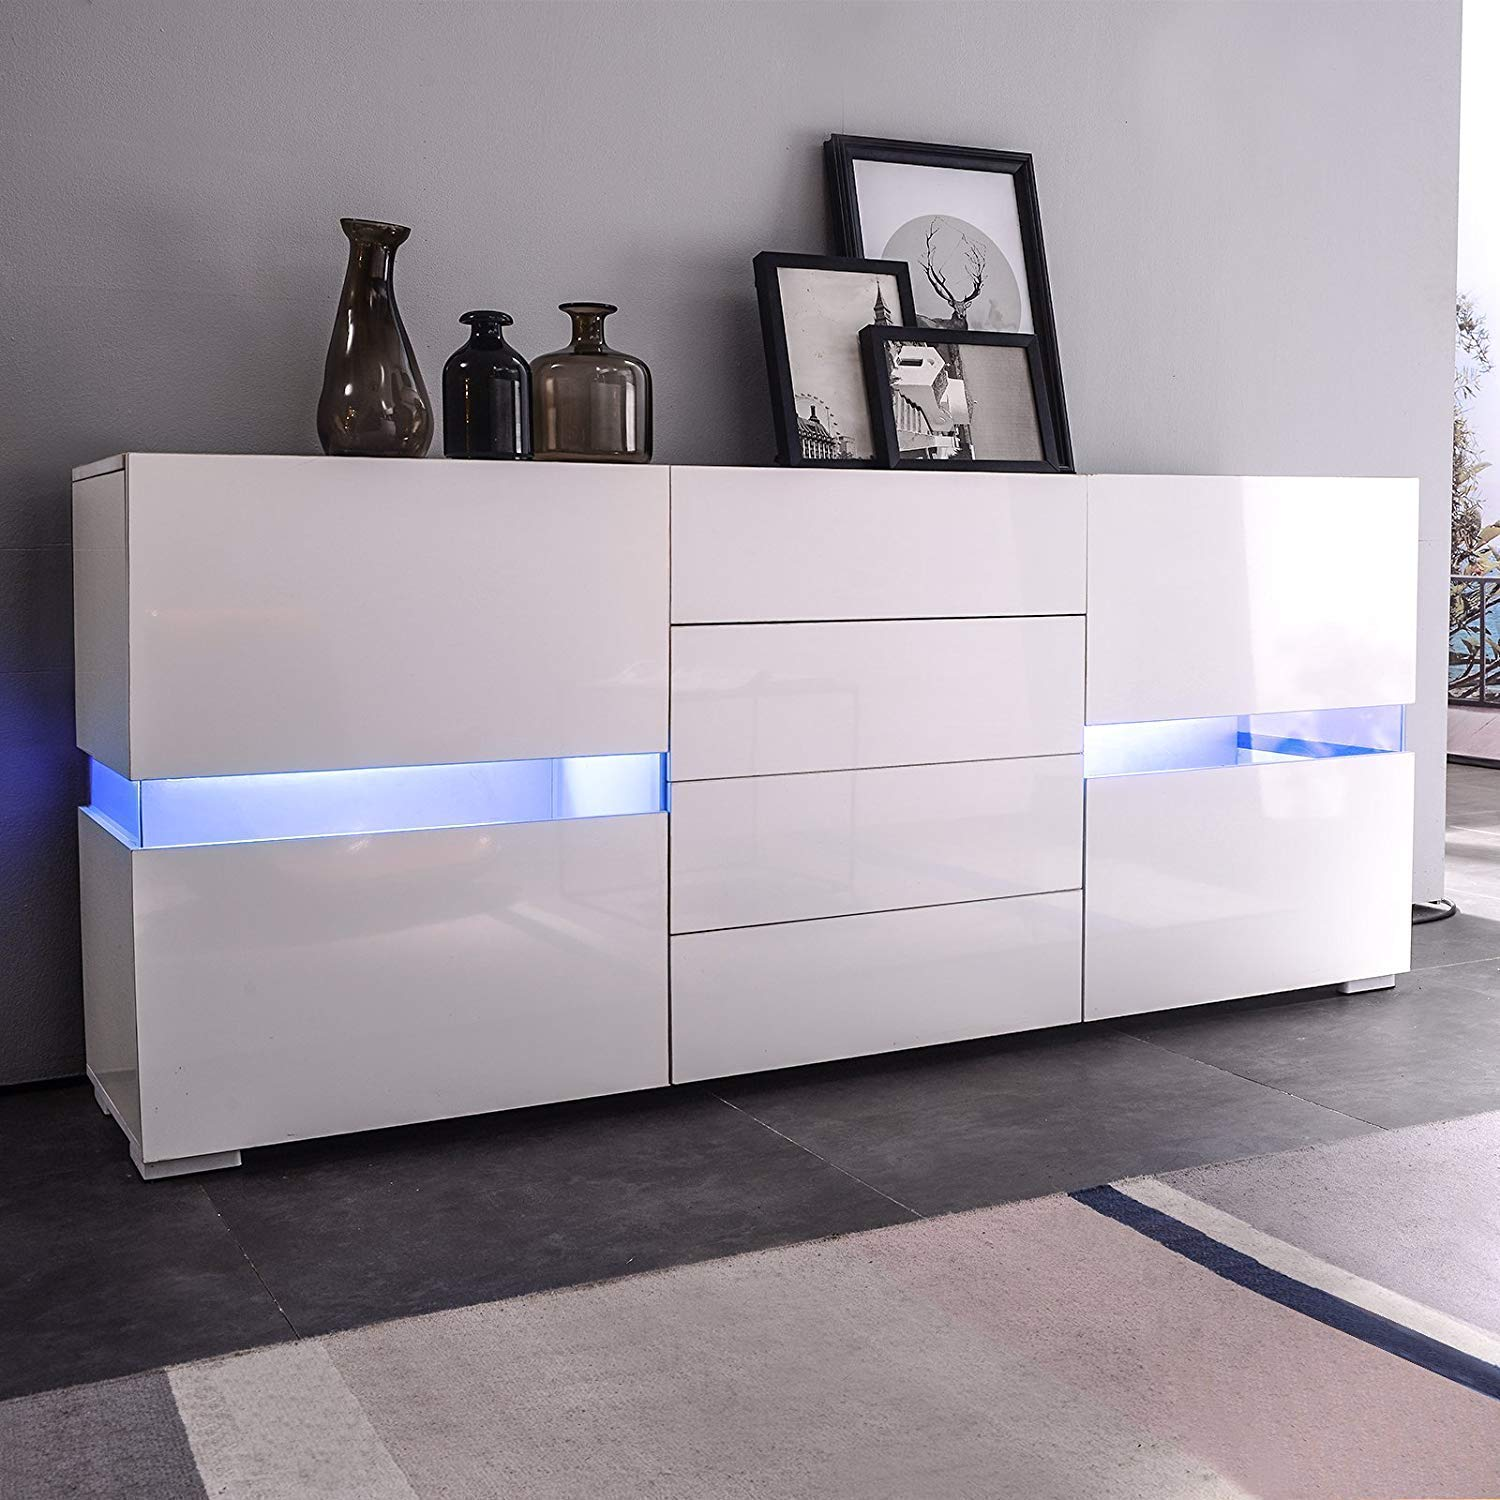 Mecor Sideboard Cabinet Buffet,Kitchen Sideboard and Storage Cabinet/TV Stand High Gloss LED Dining Room Server Console Table 2 Doors & 4 Drawers White